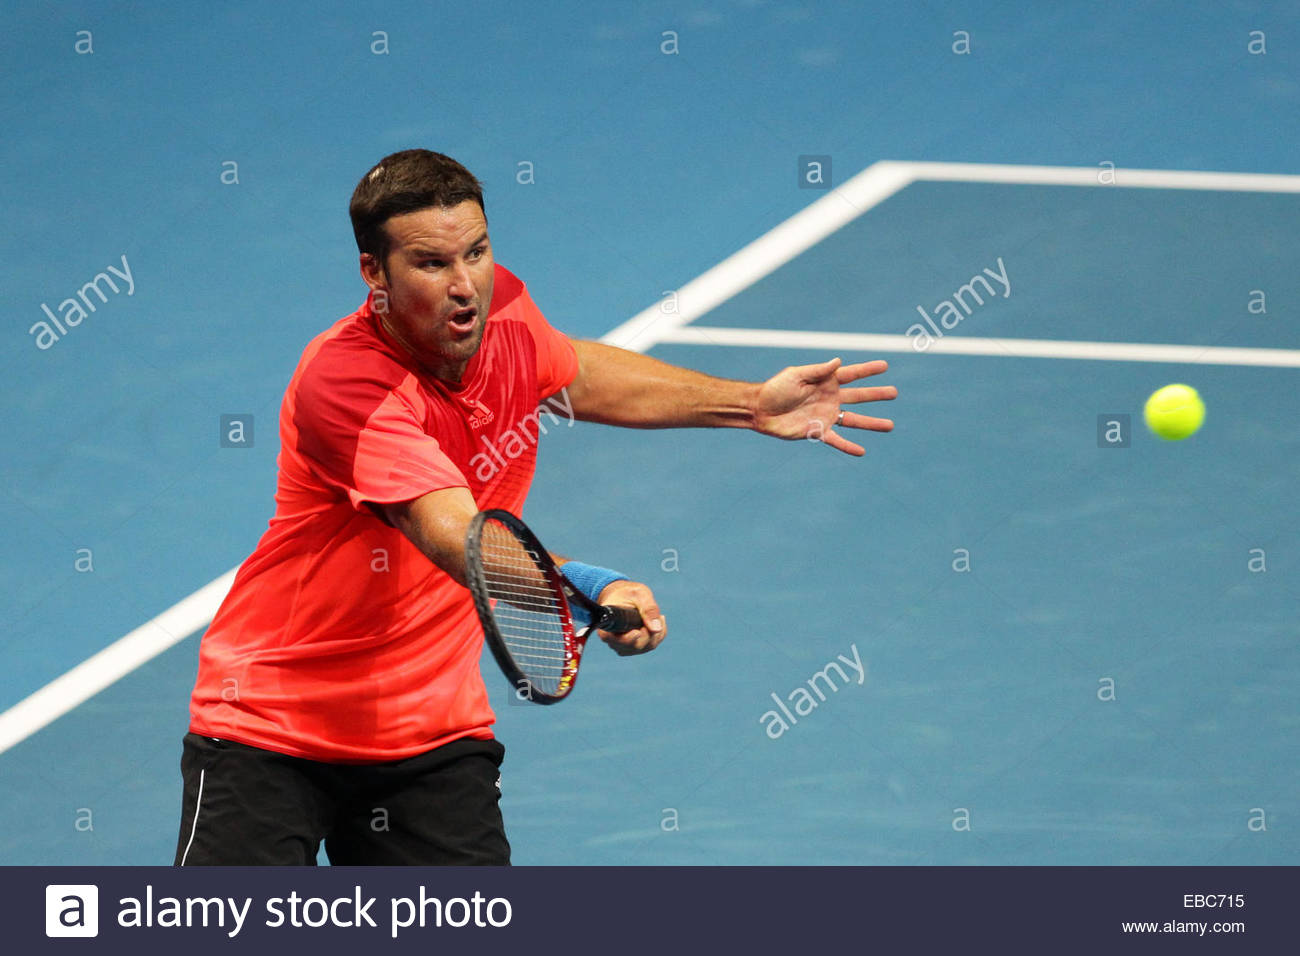 Patrick Rafter of the Singapore Slammers makes a forehand return